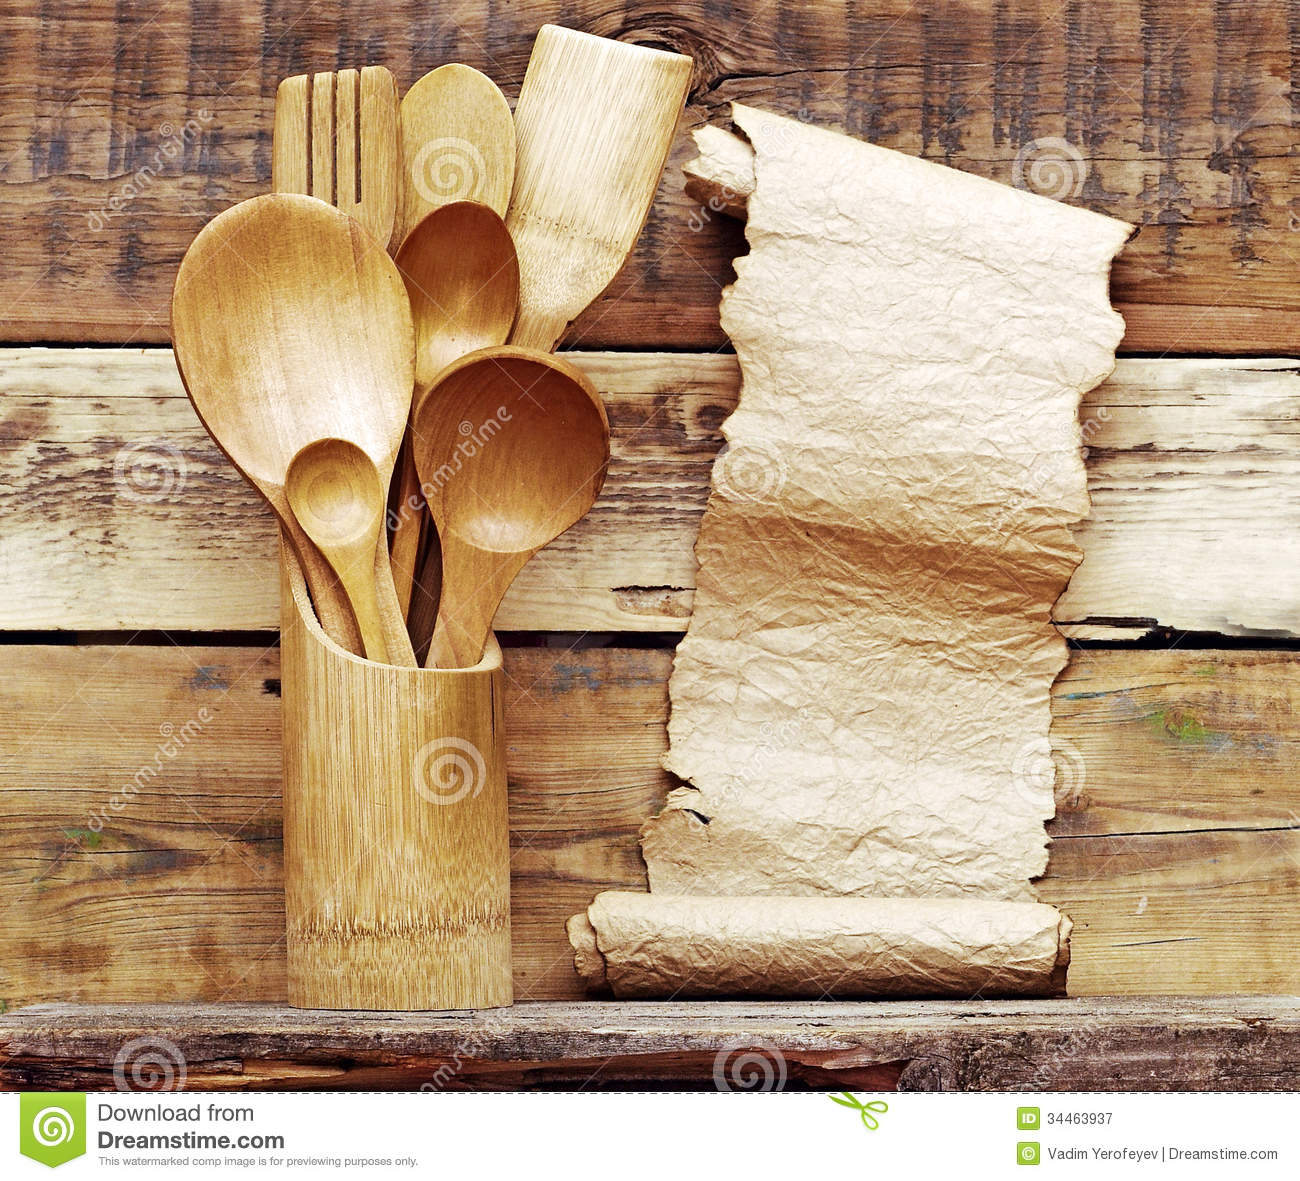 Kitchen Wooden Utensils Royalty Free Stock Photography Image 34463937